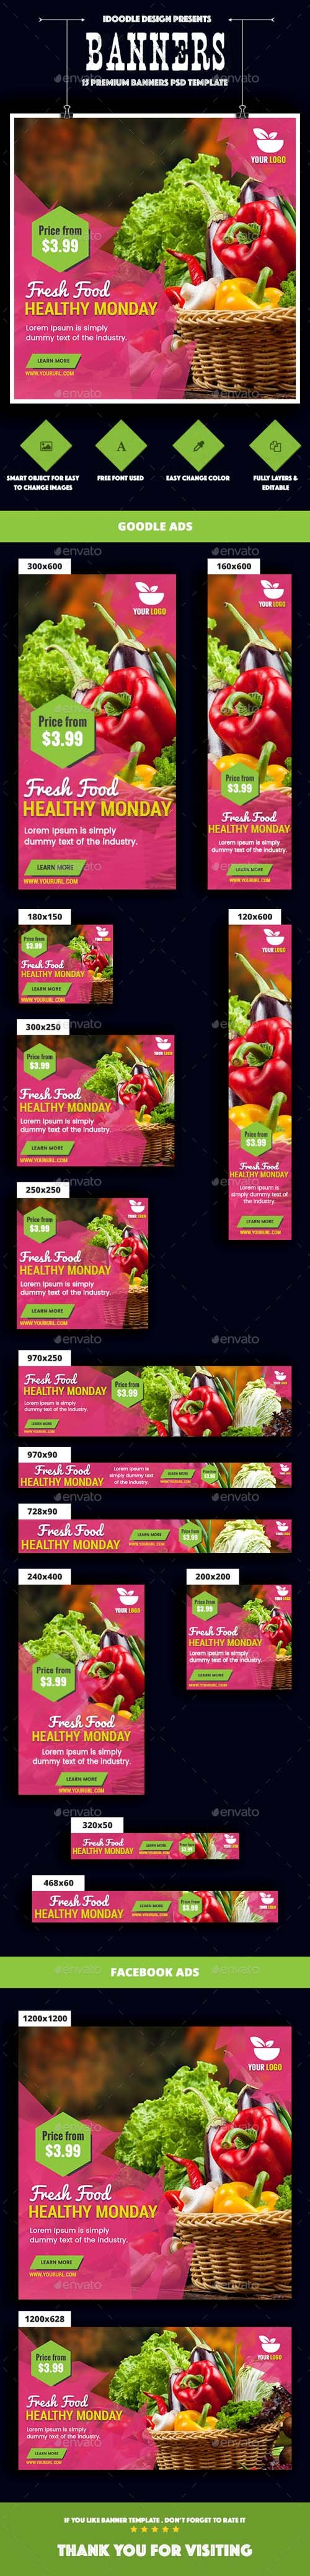 Food & Restaurant Banners Ad 20152854